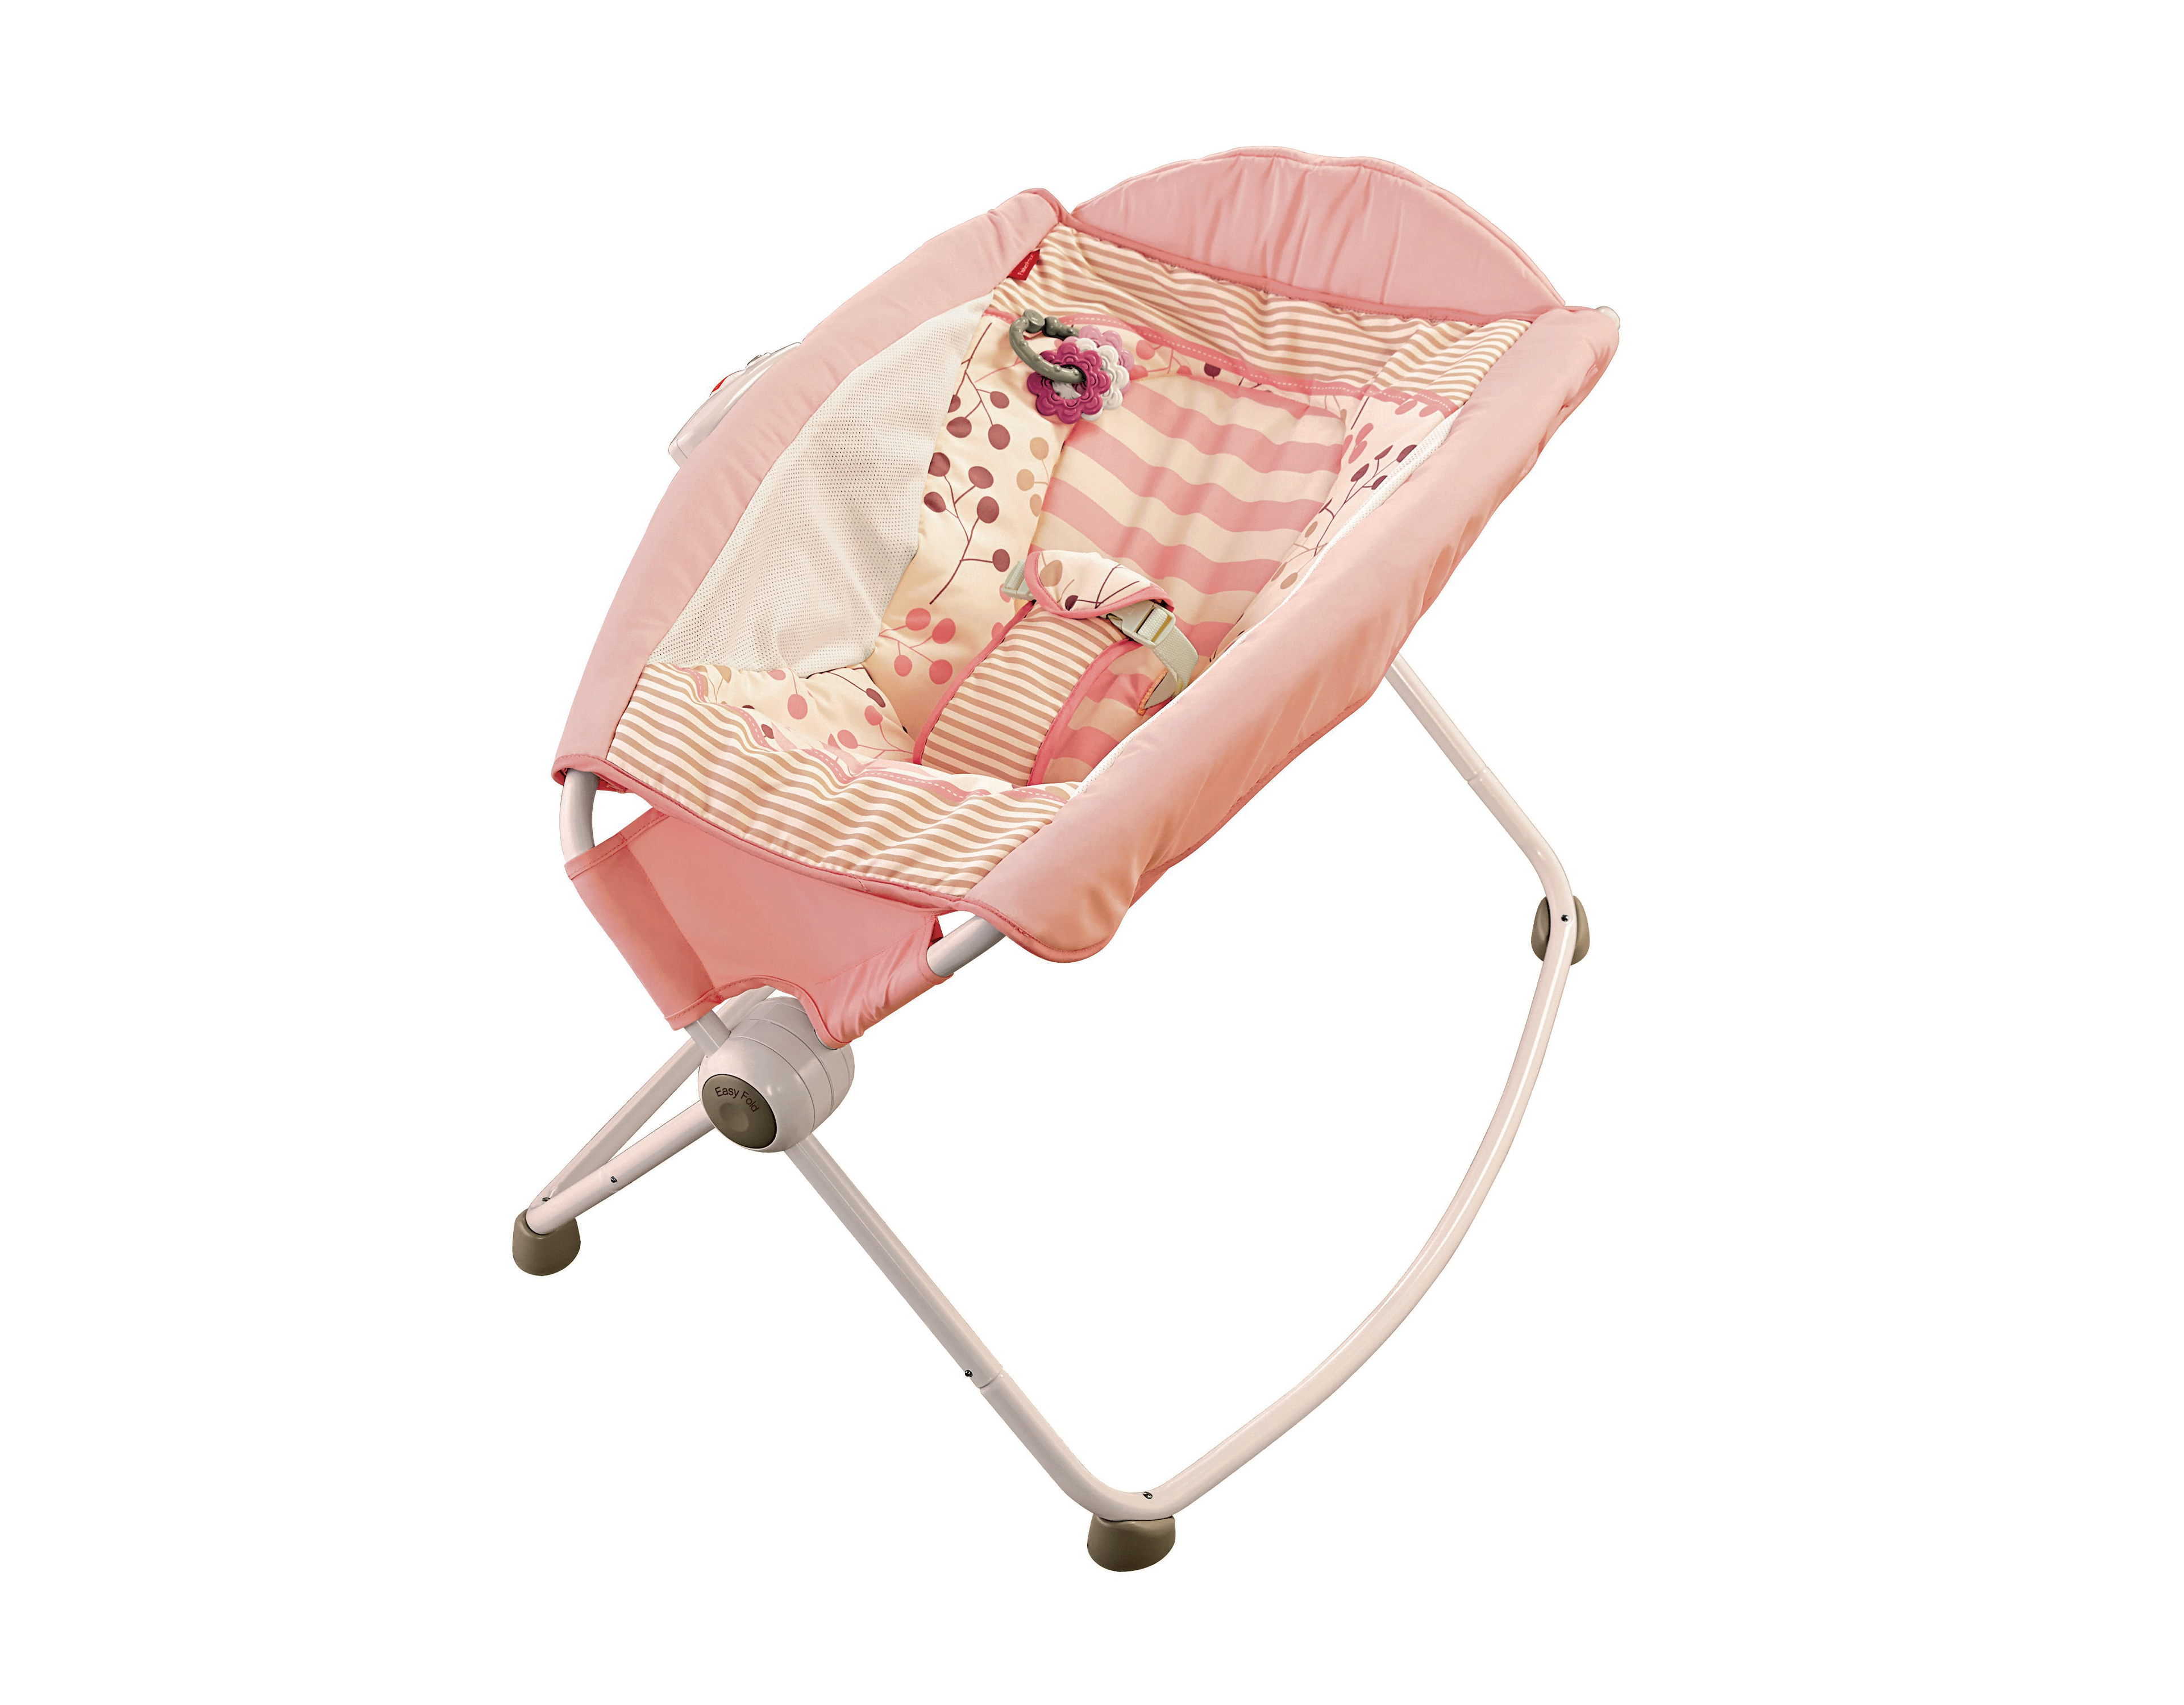 Fisher Price Recalls Rock N Play Baby Sleeper Tied To